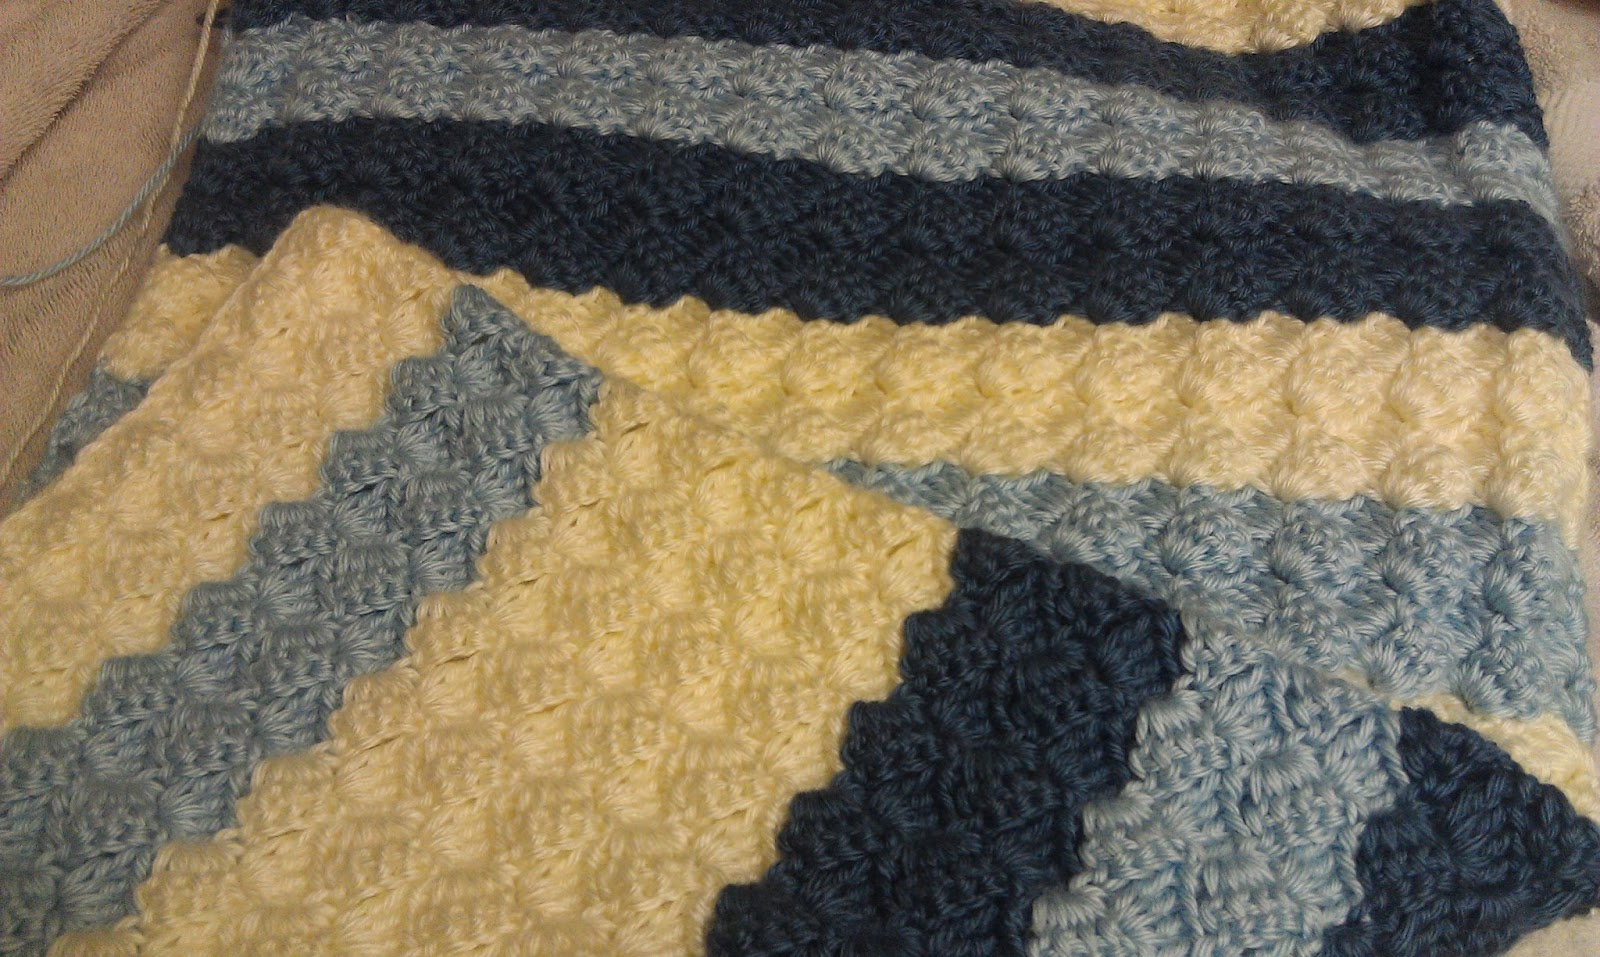 Missed Stitches Crochet: A New Year And A New Pattern!